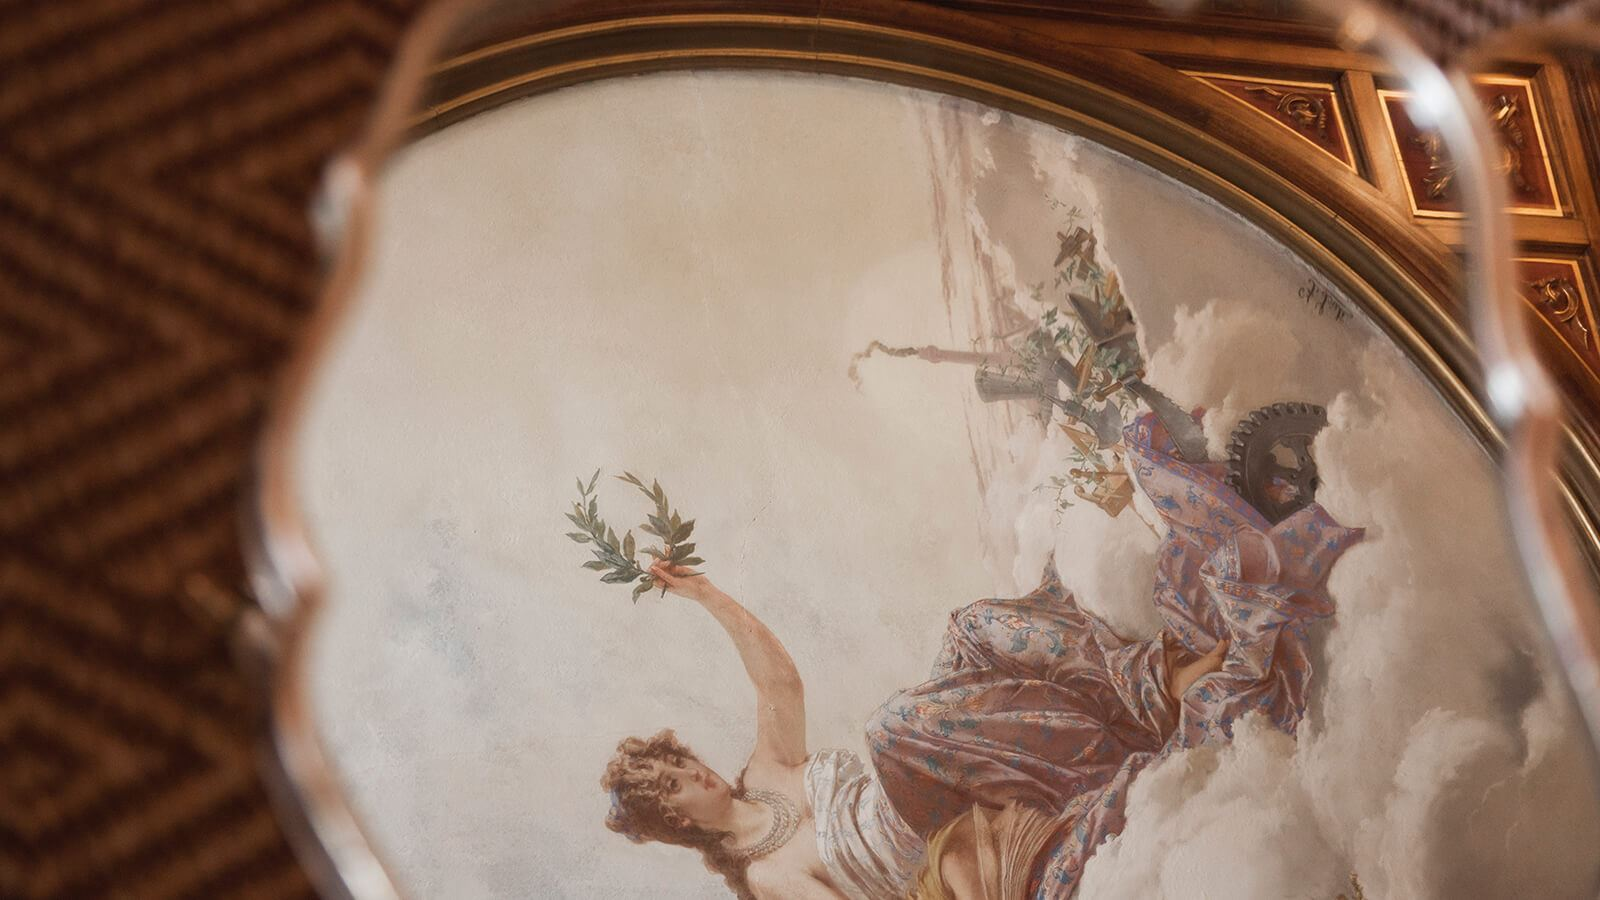 Grand Hotel a Villa Feltrinelli - The delicate frescoes